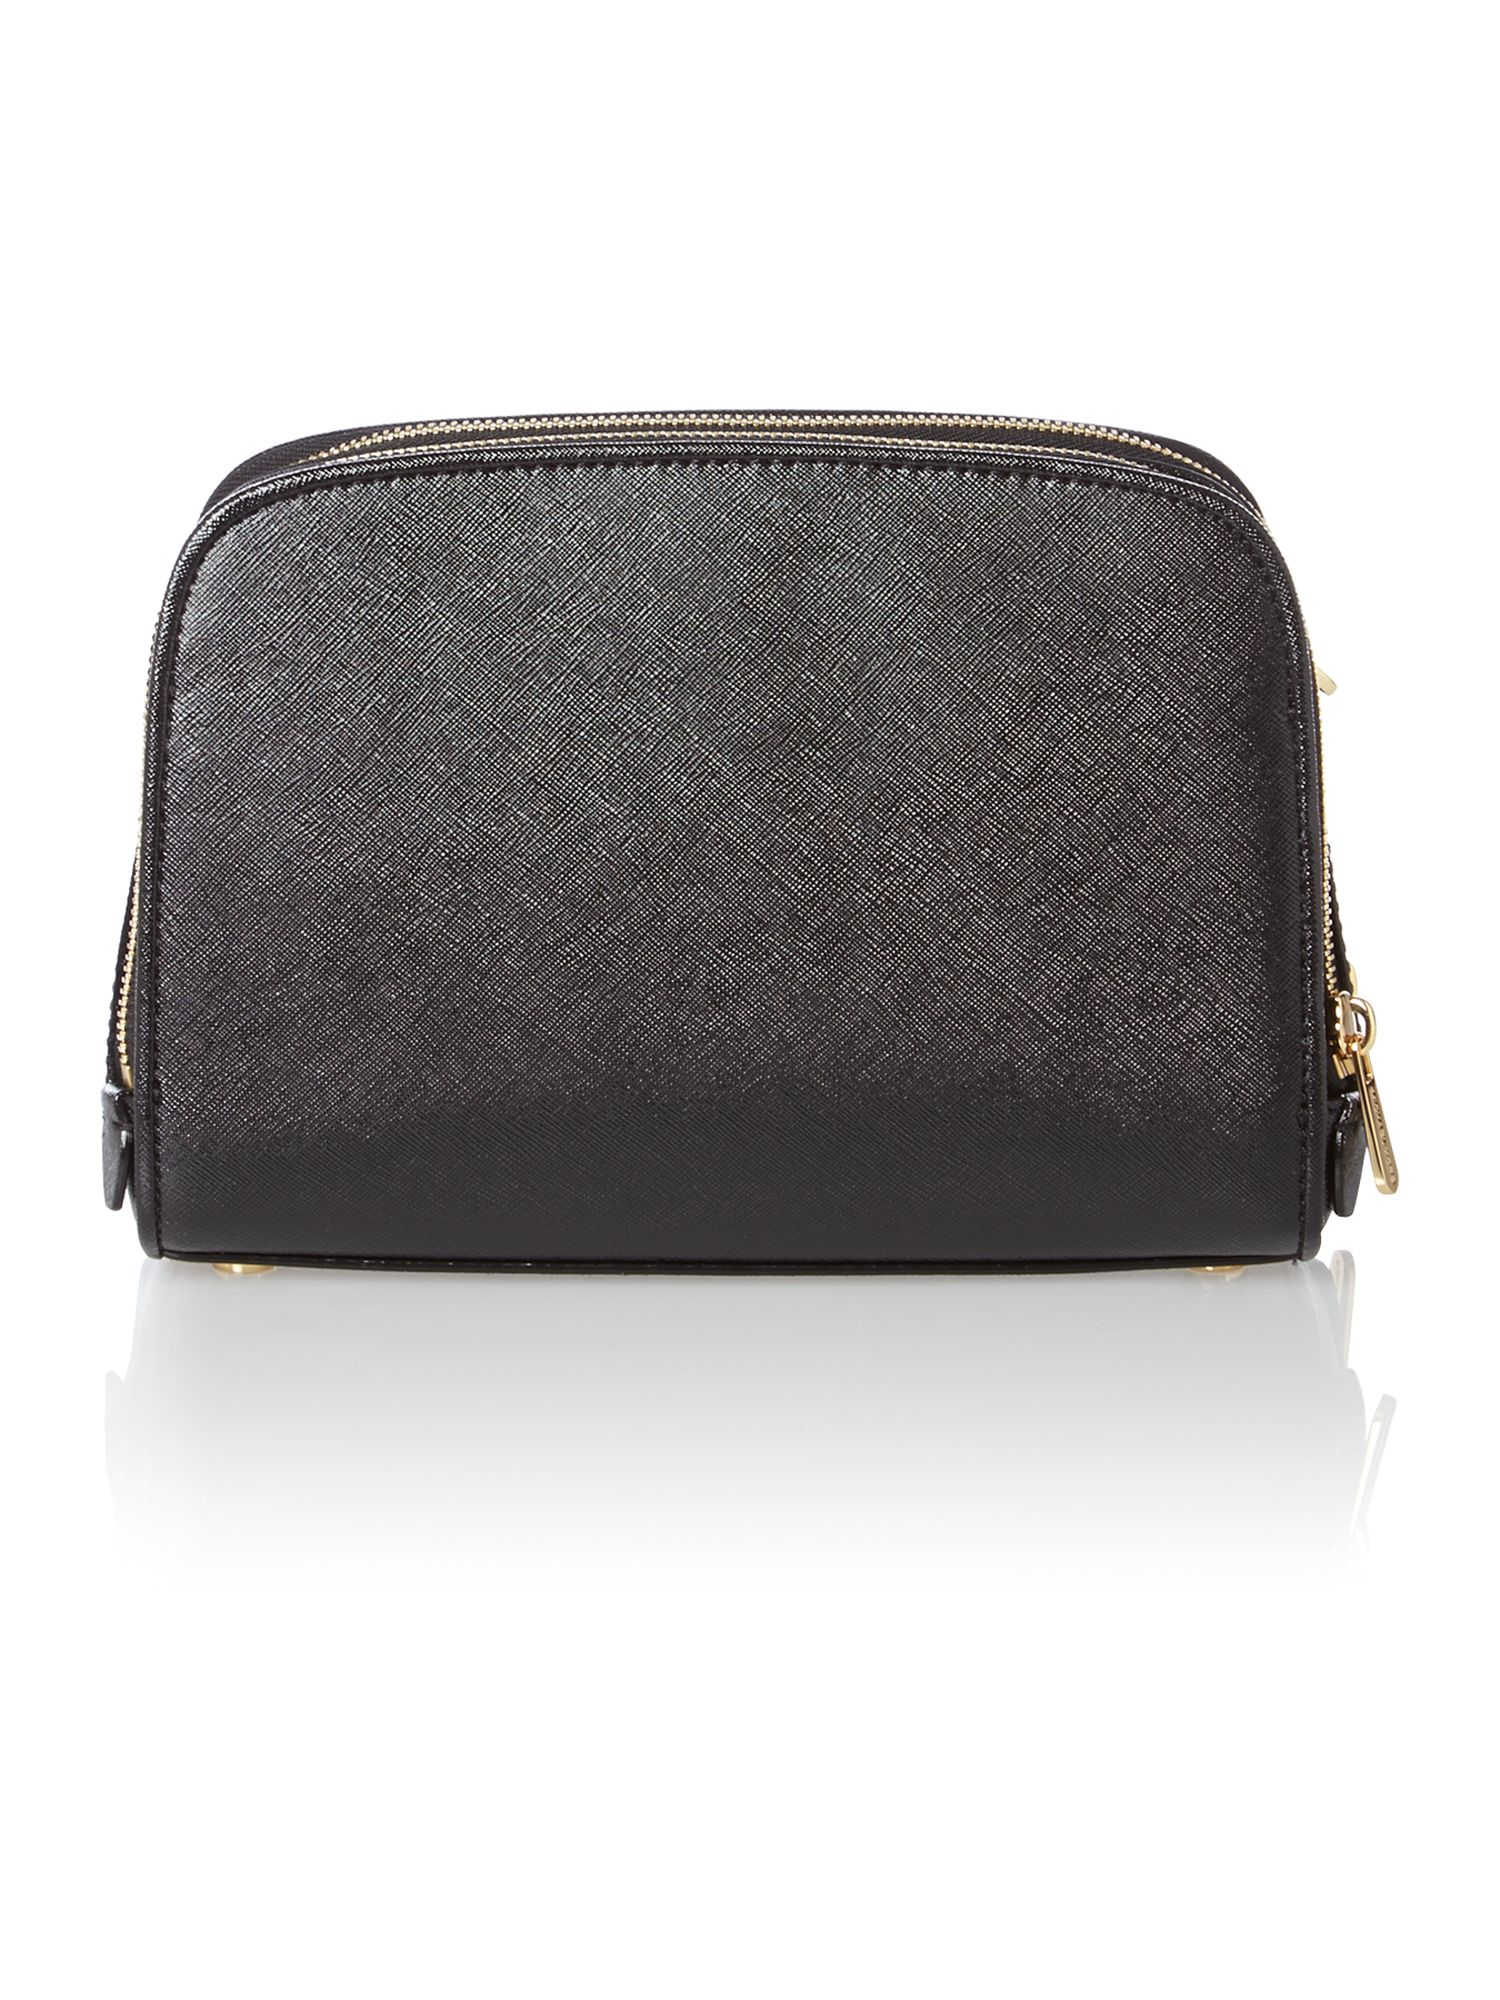 Reese black patent cross body bag